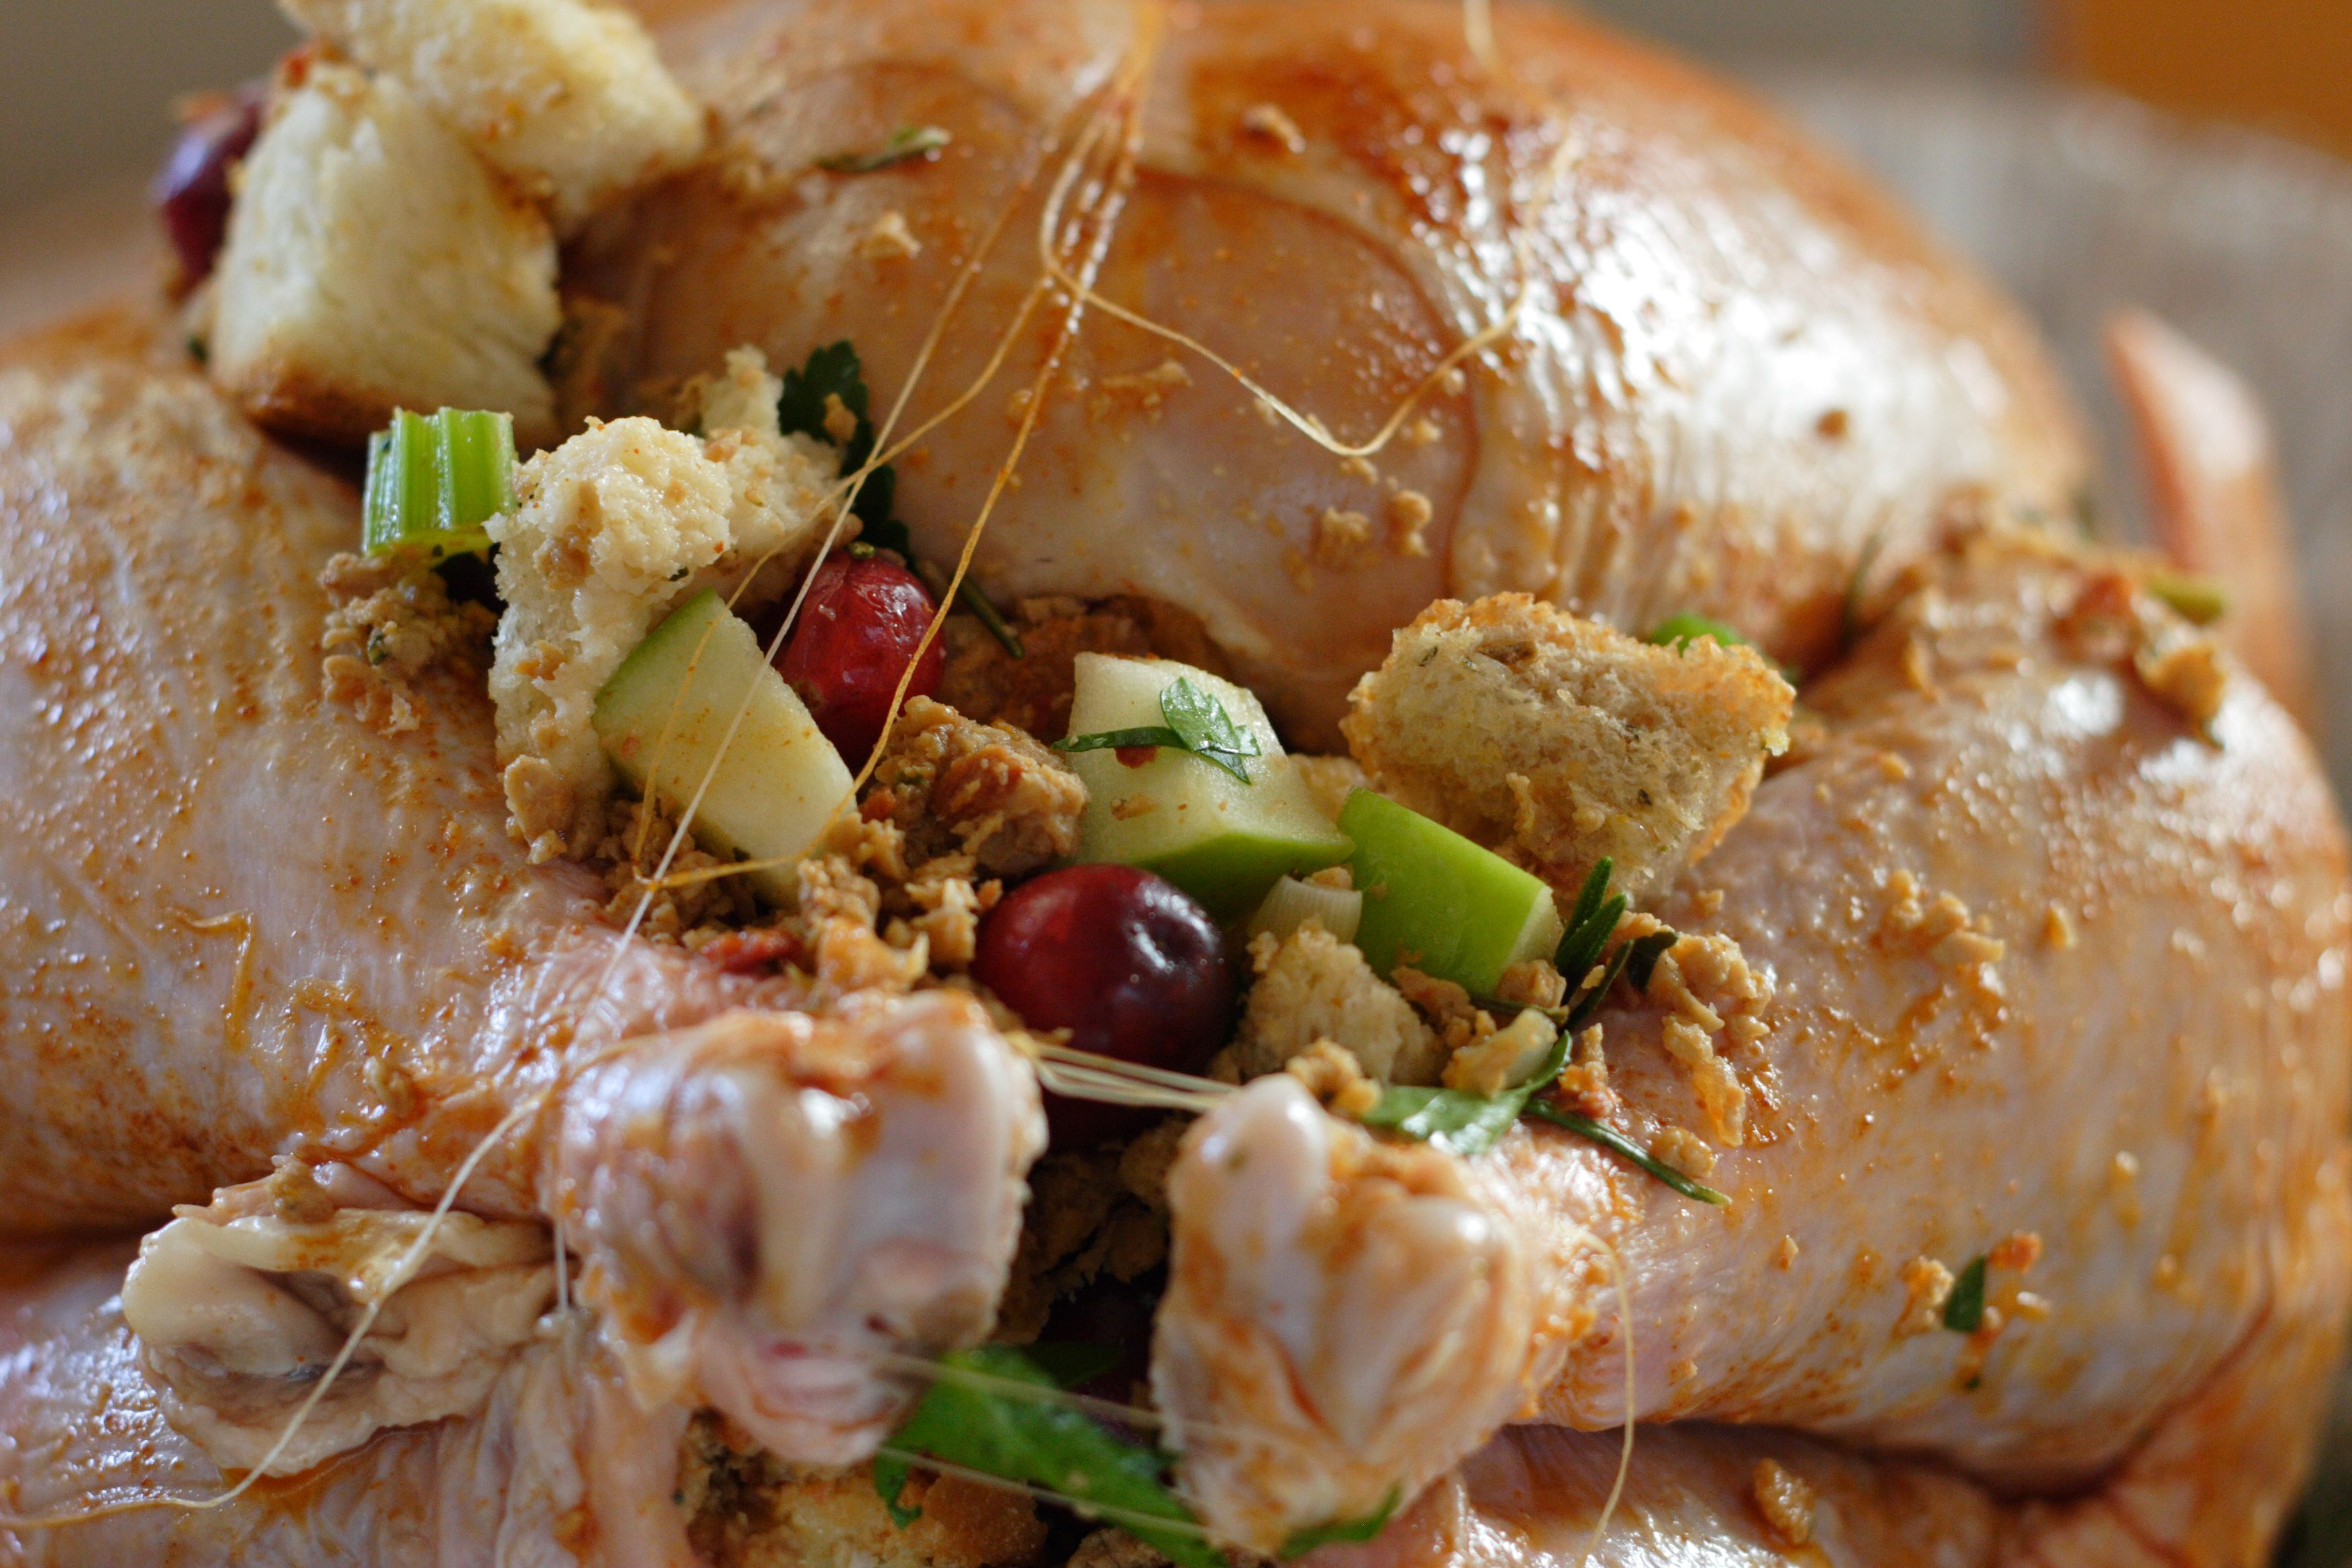 Raw turkey with stuffing